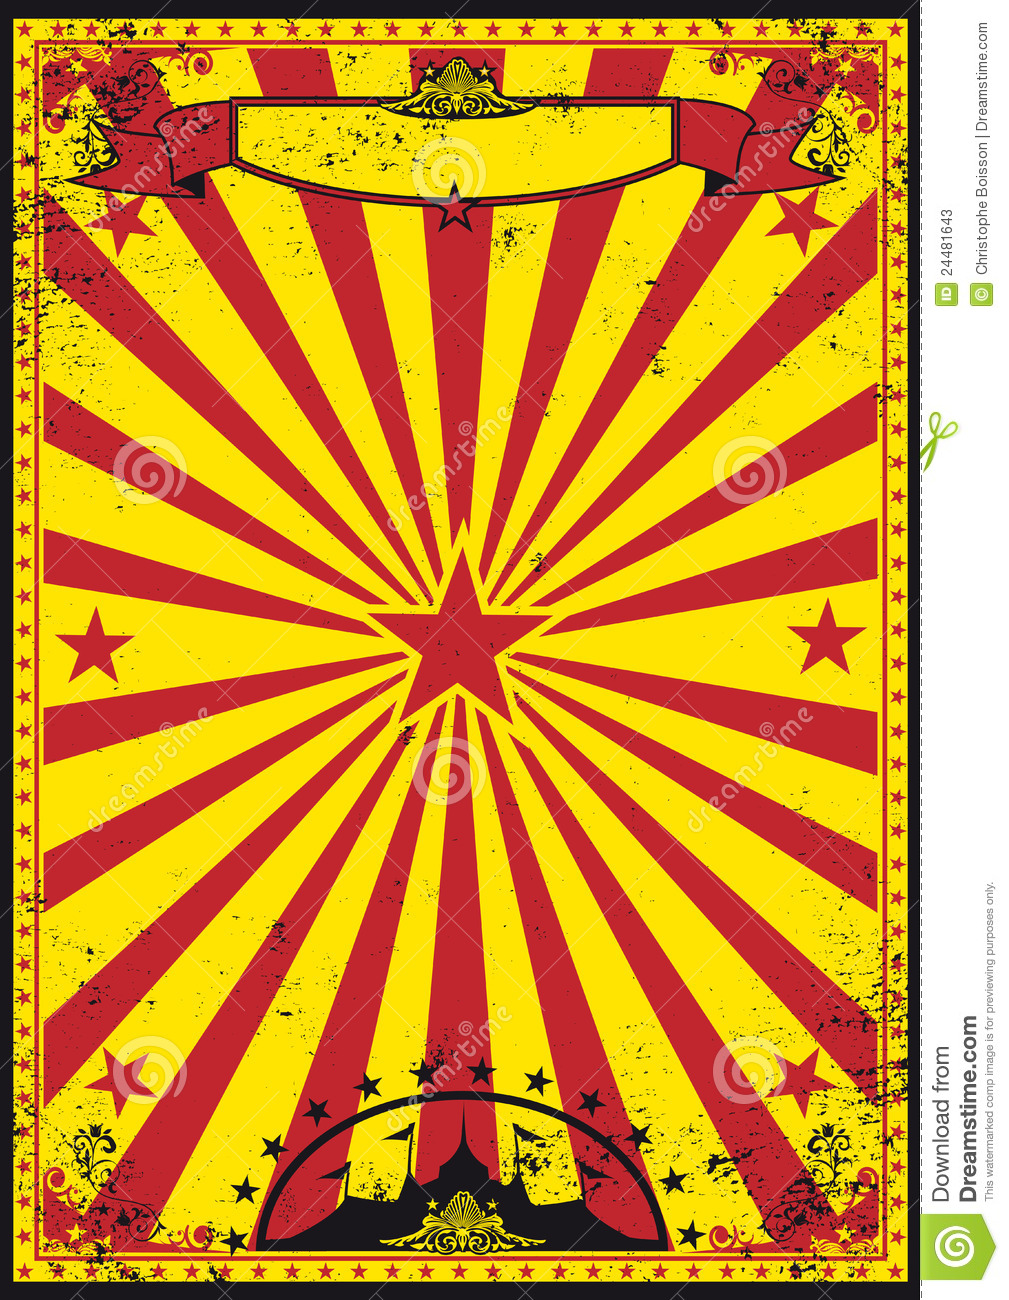 Vintage Circus Poster Background Red And Yellow Retro C...